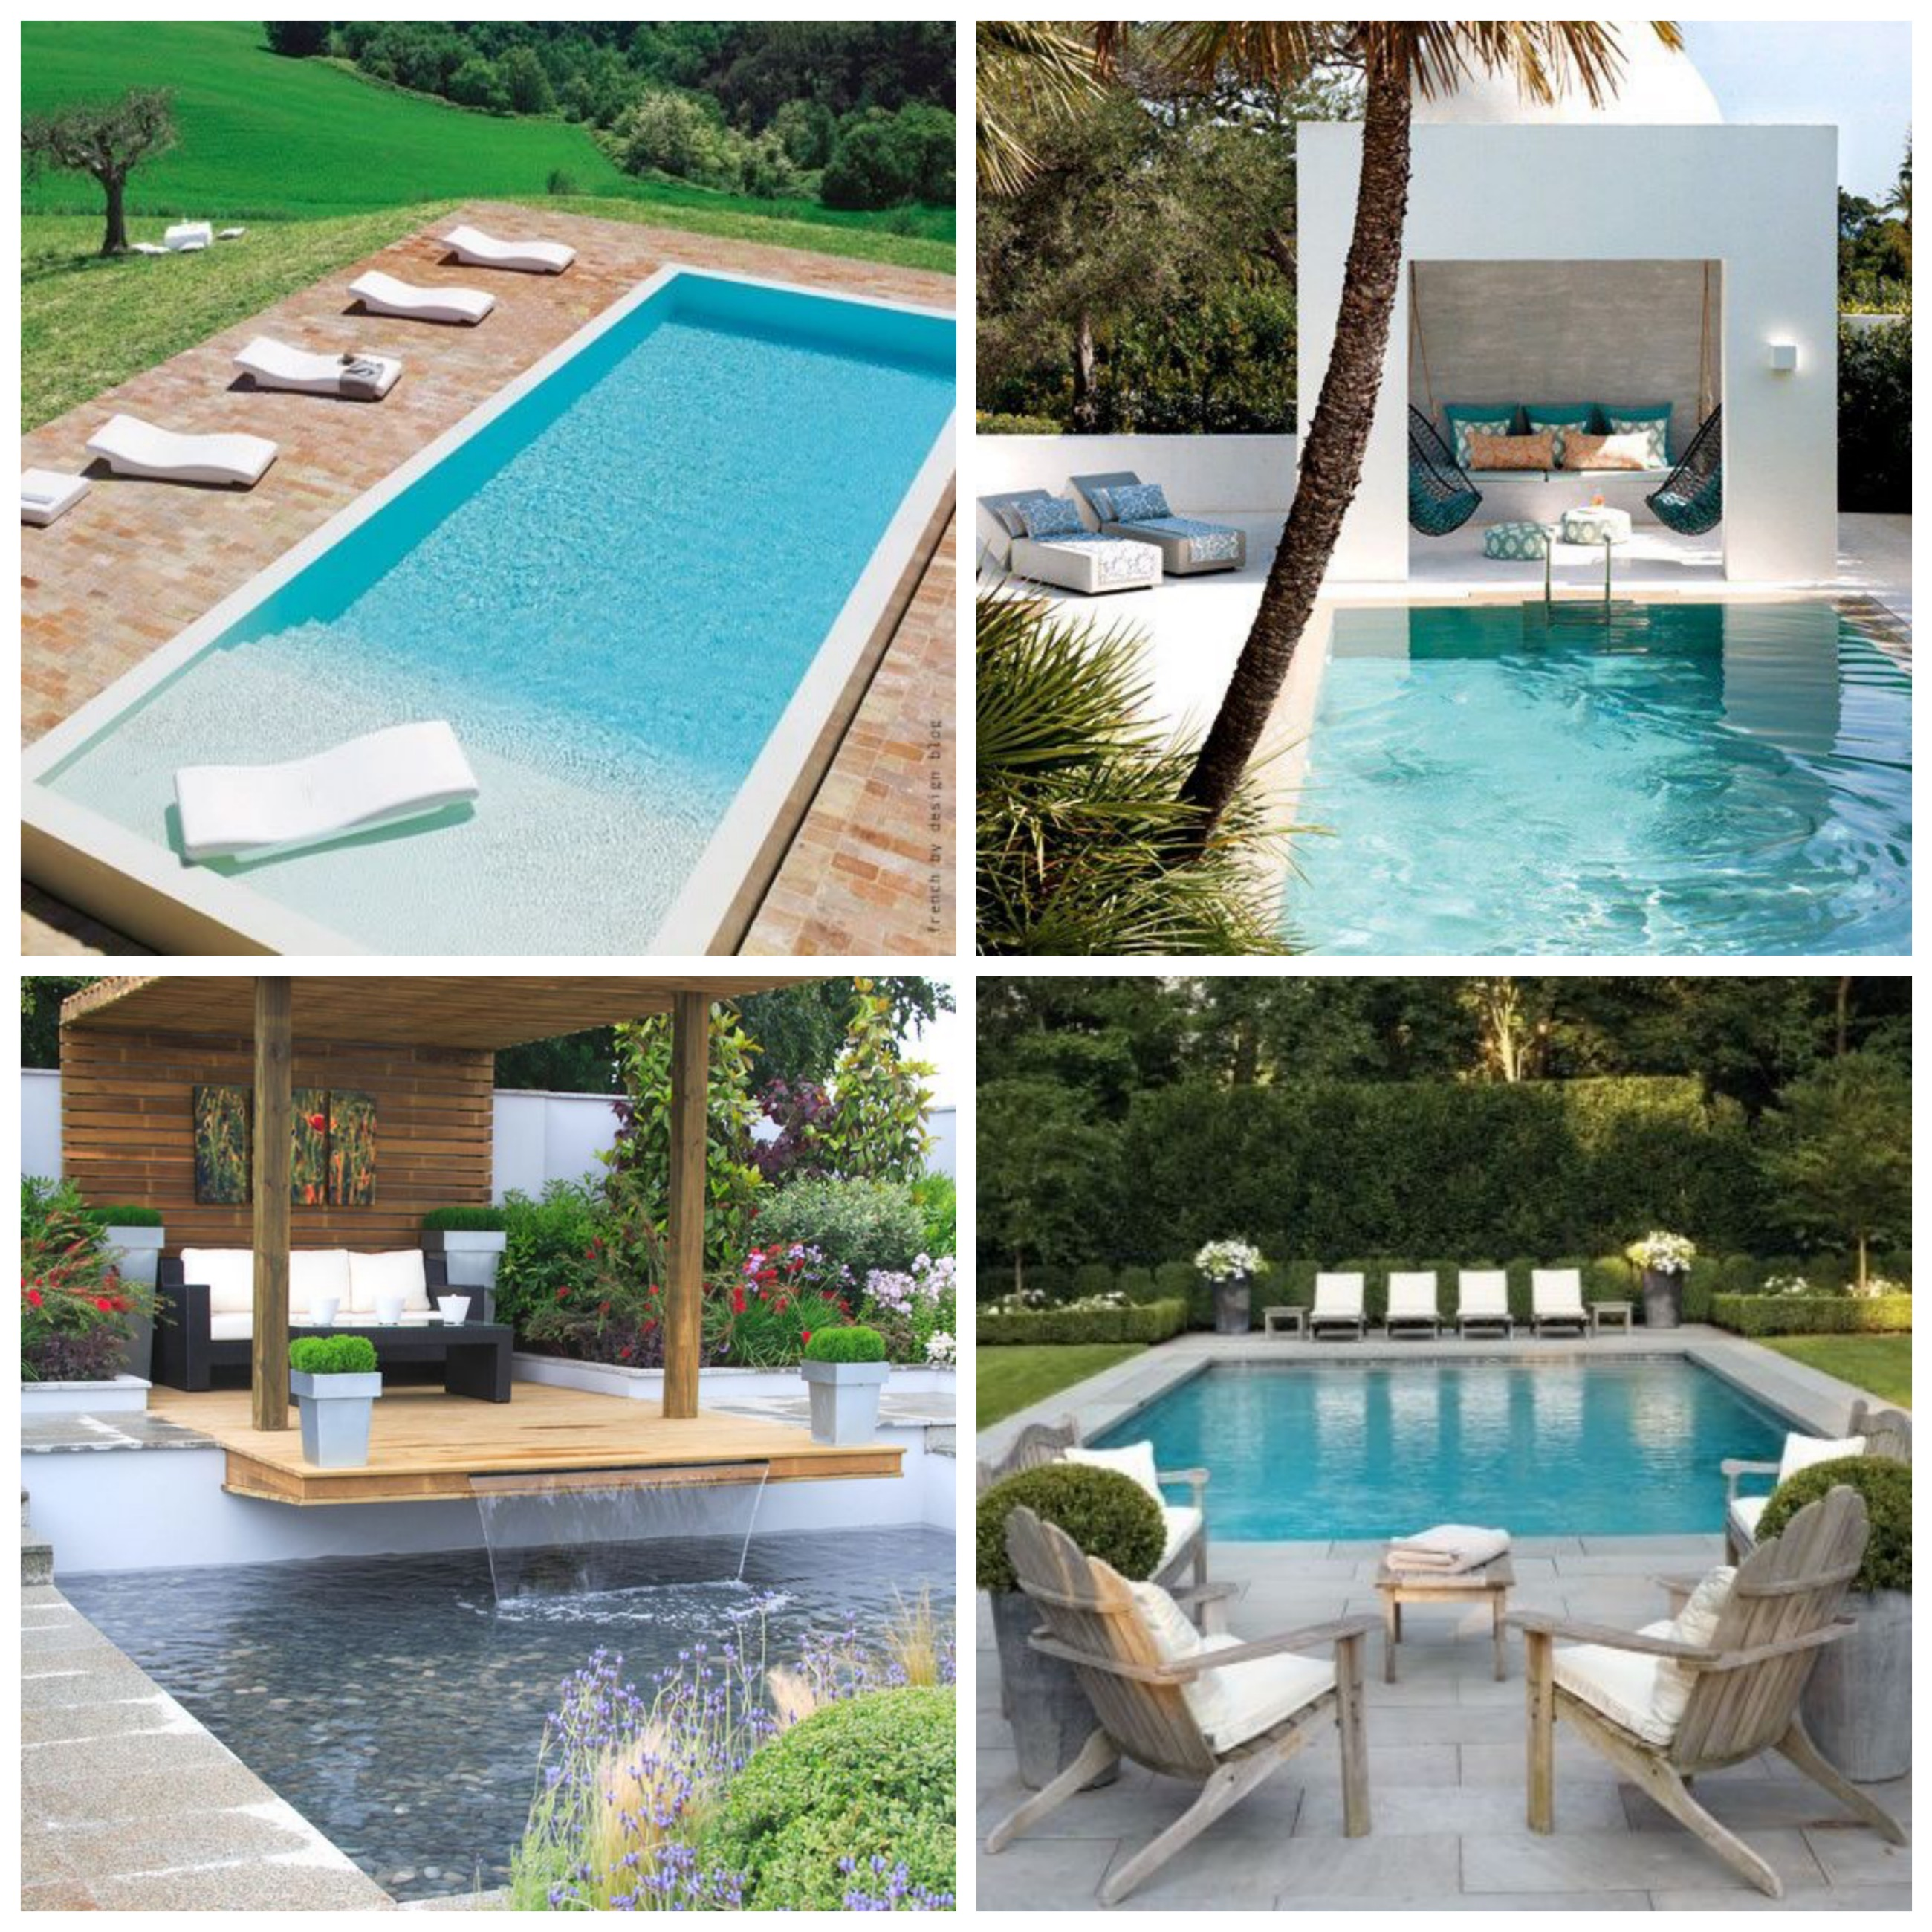 White & Wood Poolsides